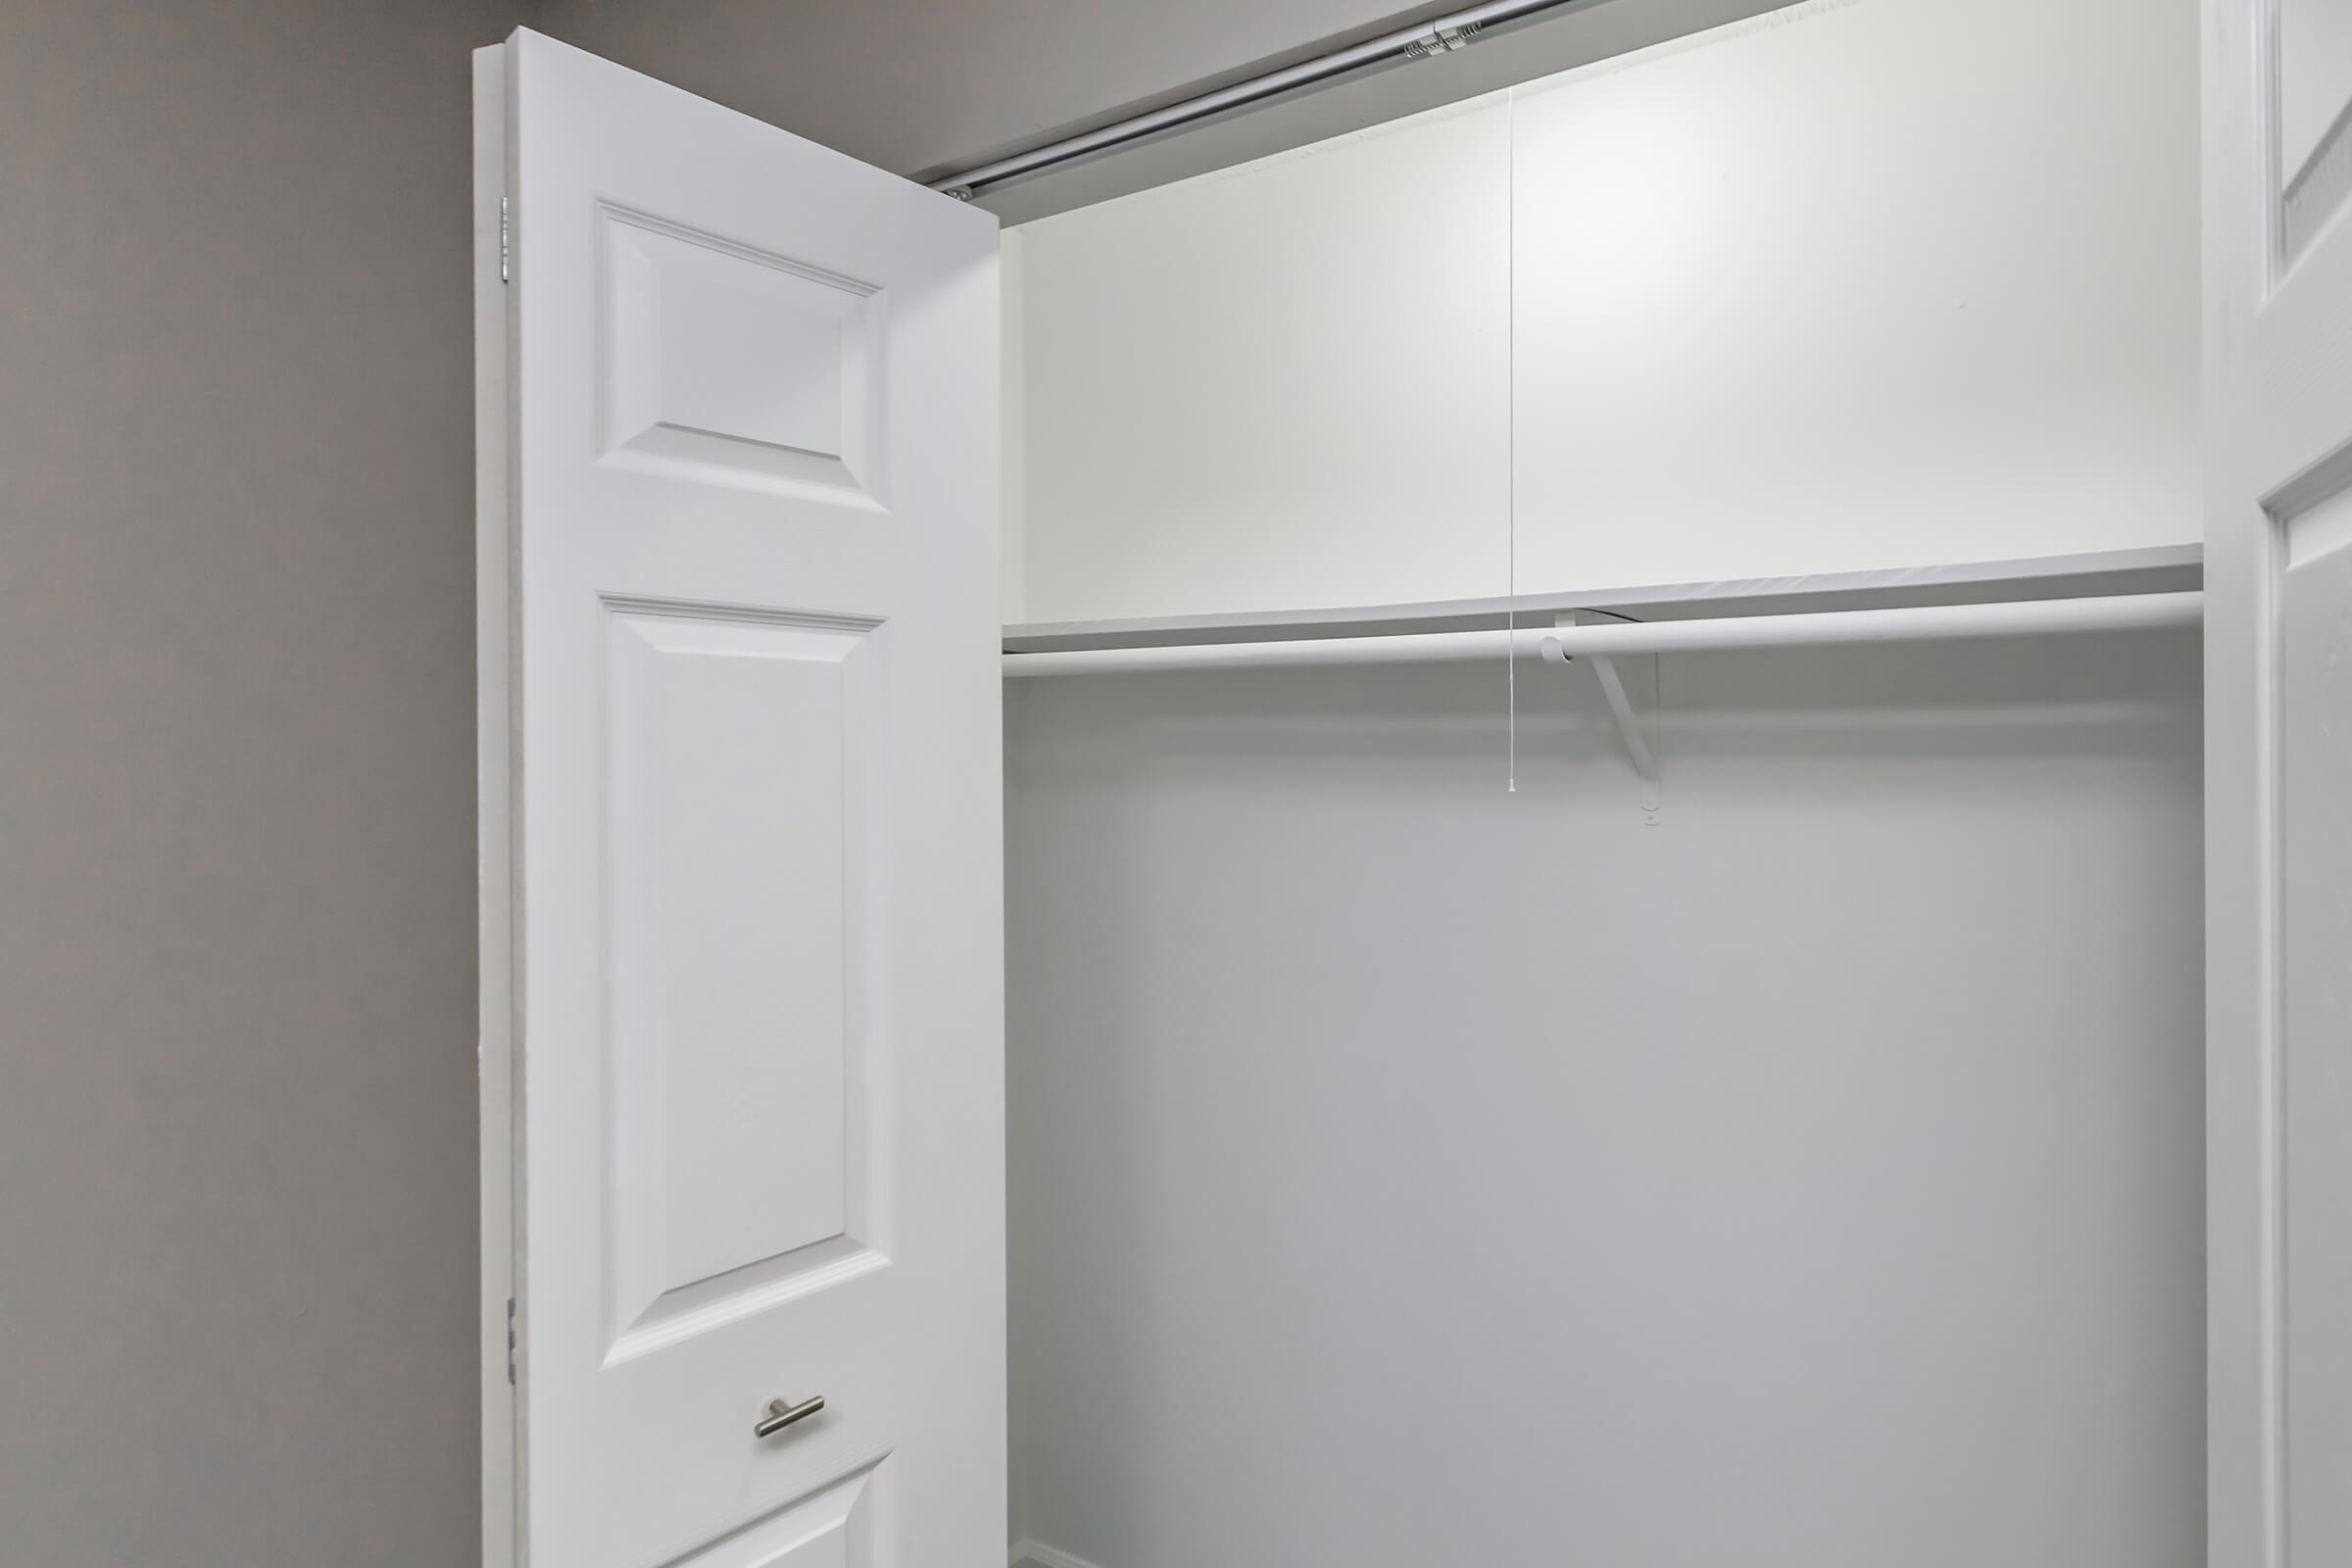 Loads of Closet Space Here at The Magnolia at Laurel Ridge Apartments in Chattanooga, Tennessee